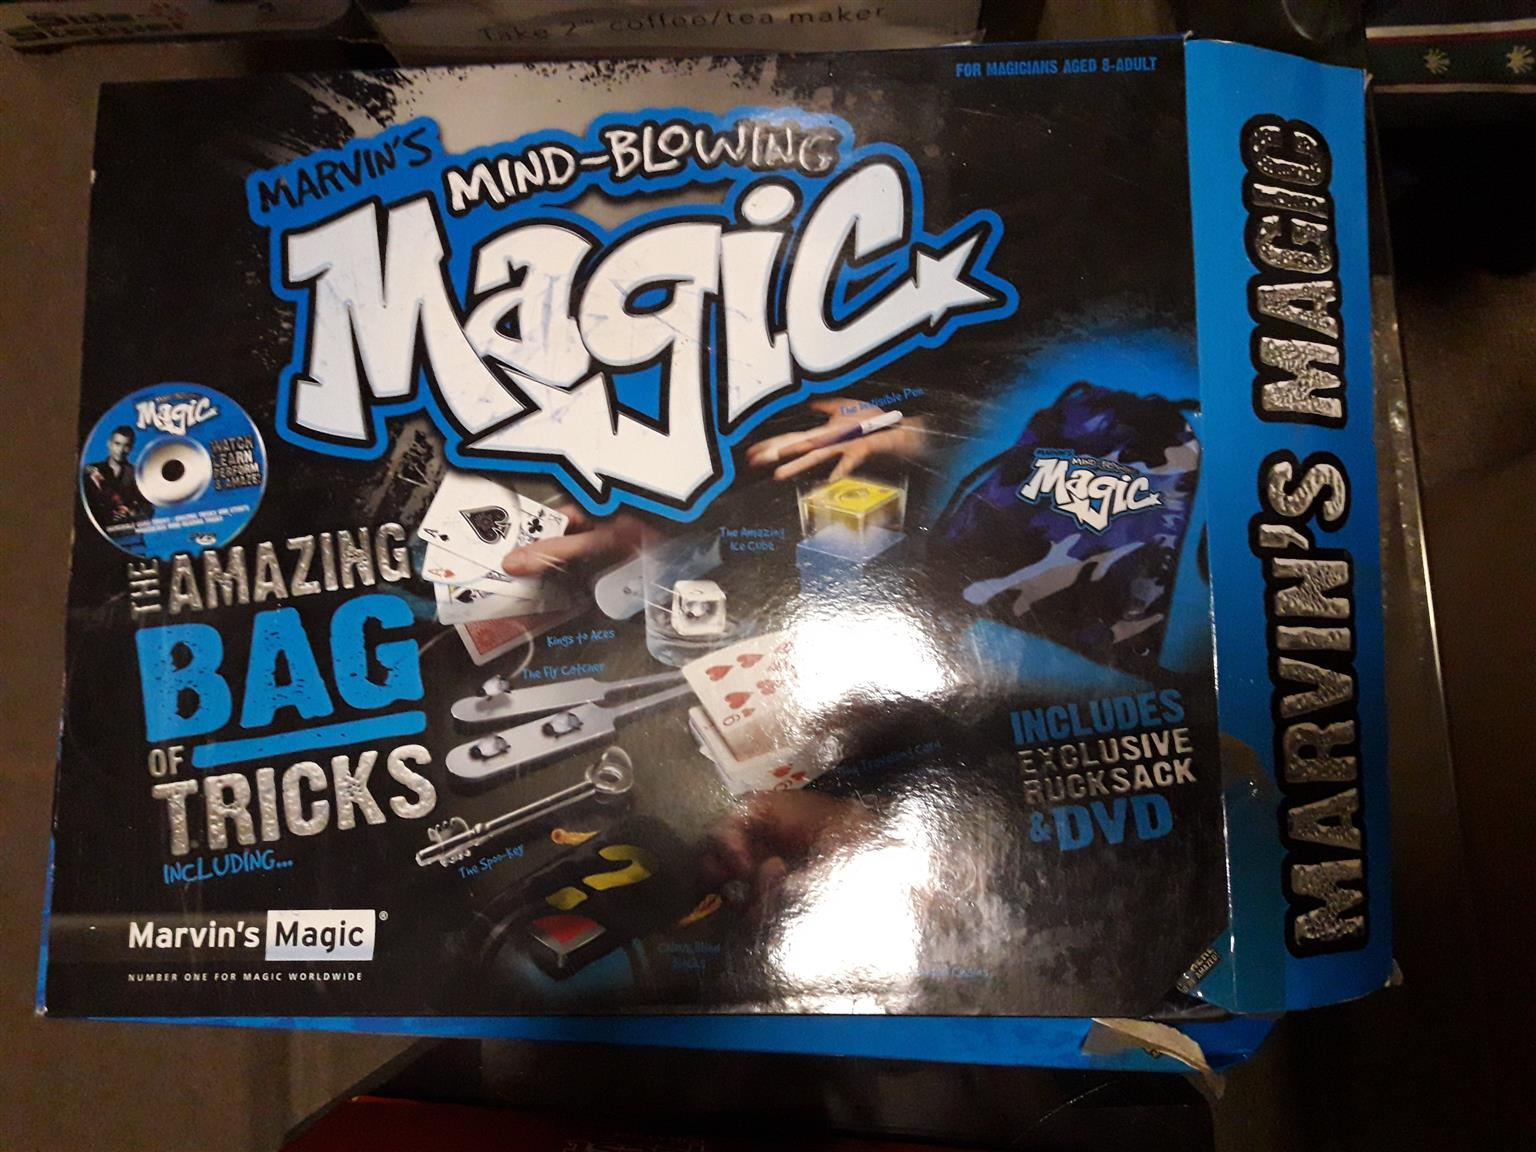 Marvin's Mind Blowing Magic – The Amazing Bag of Tricks